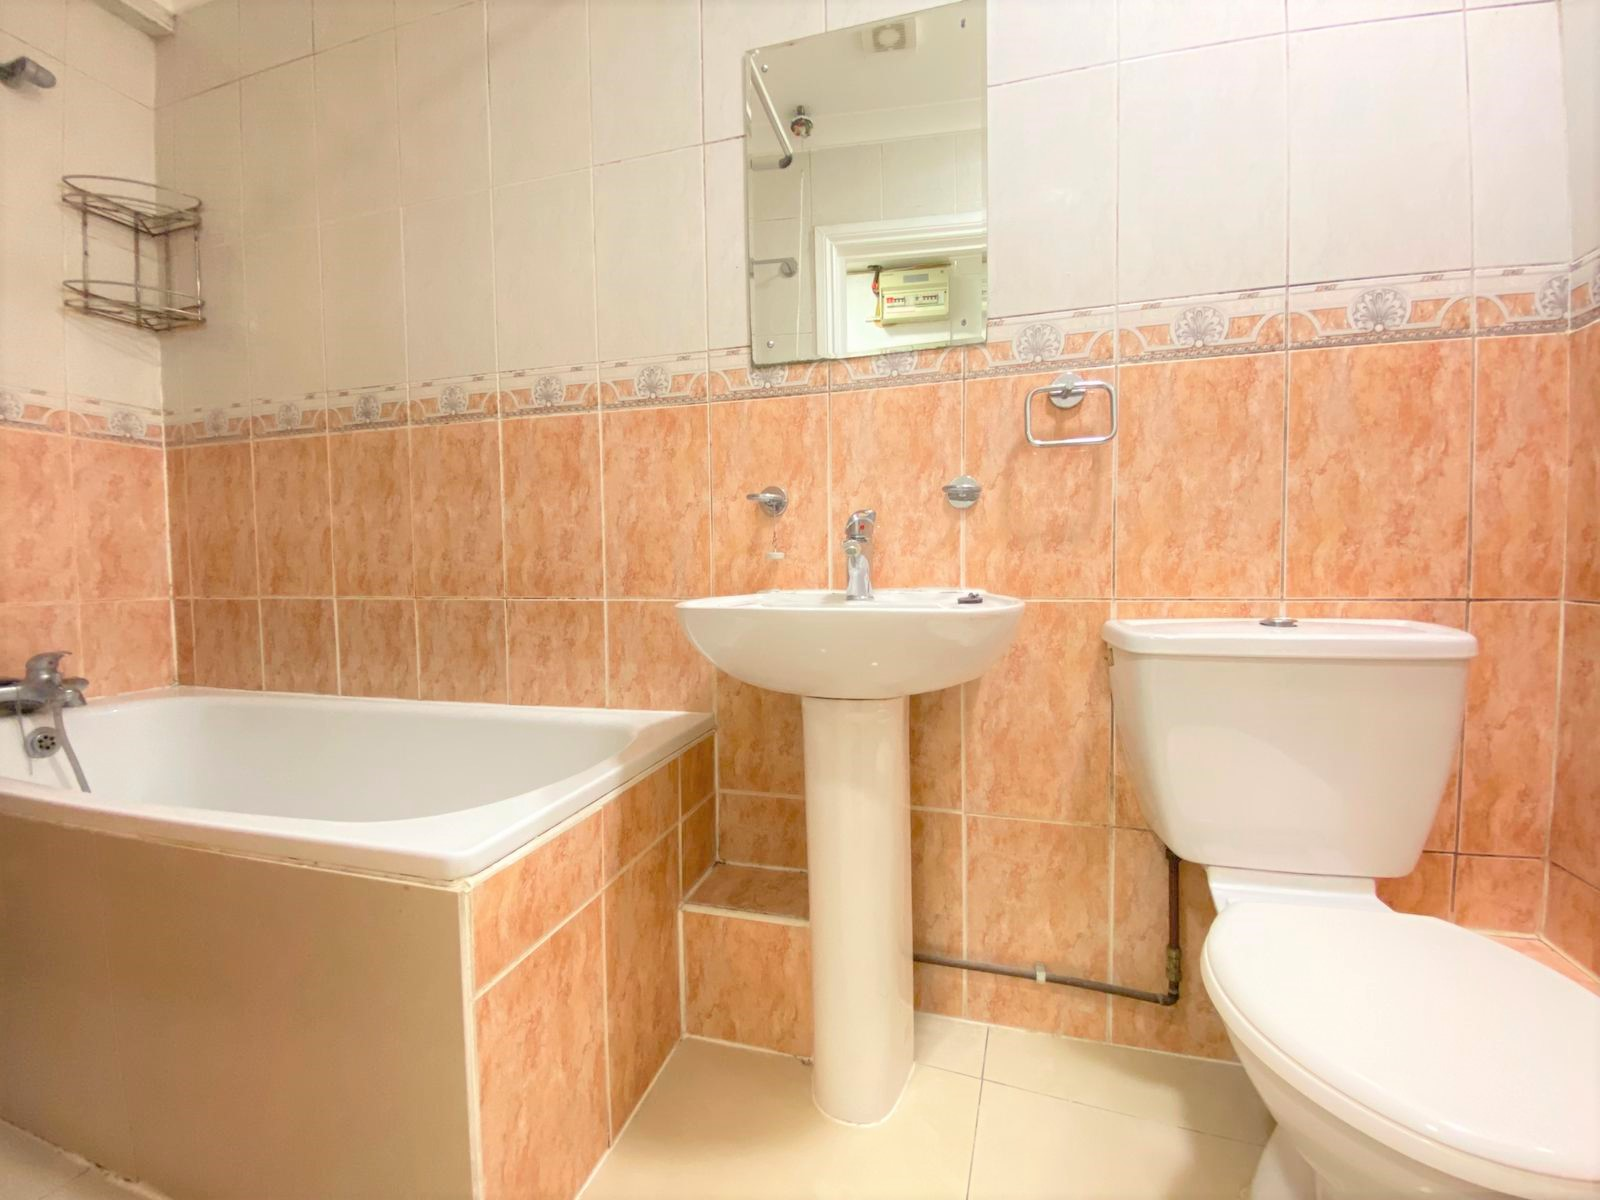 3 bed flat to rent in North End Road, West Kensington, London 5